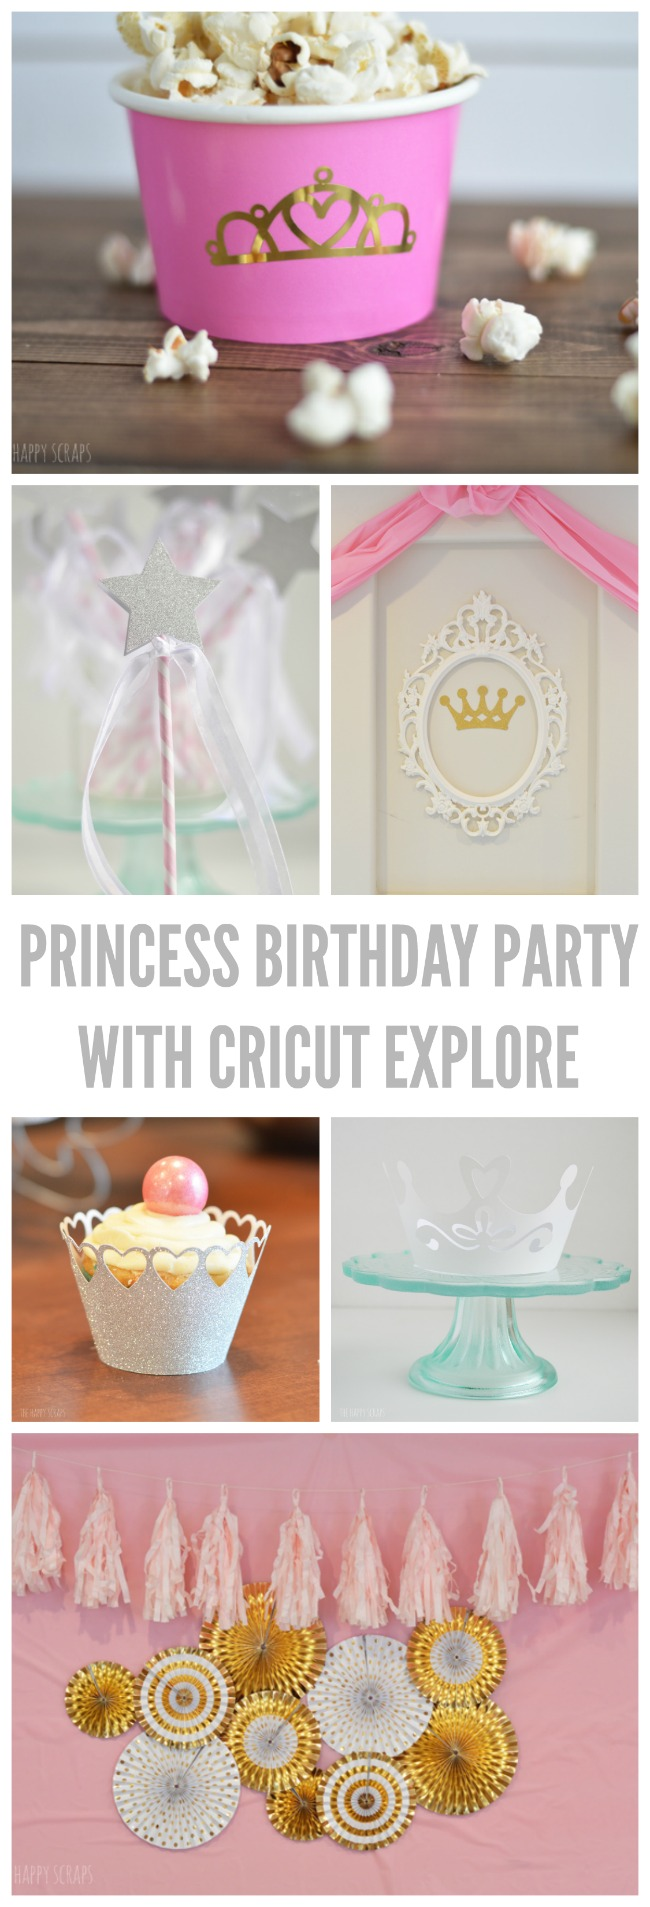 Putting together a birthday party has never been so easy! Stop by and check out this Princess Birthday Party with Cricut Explore today!